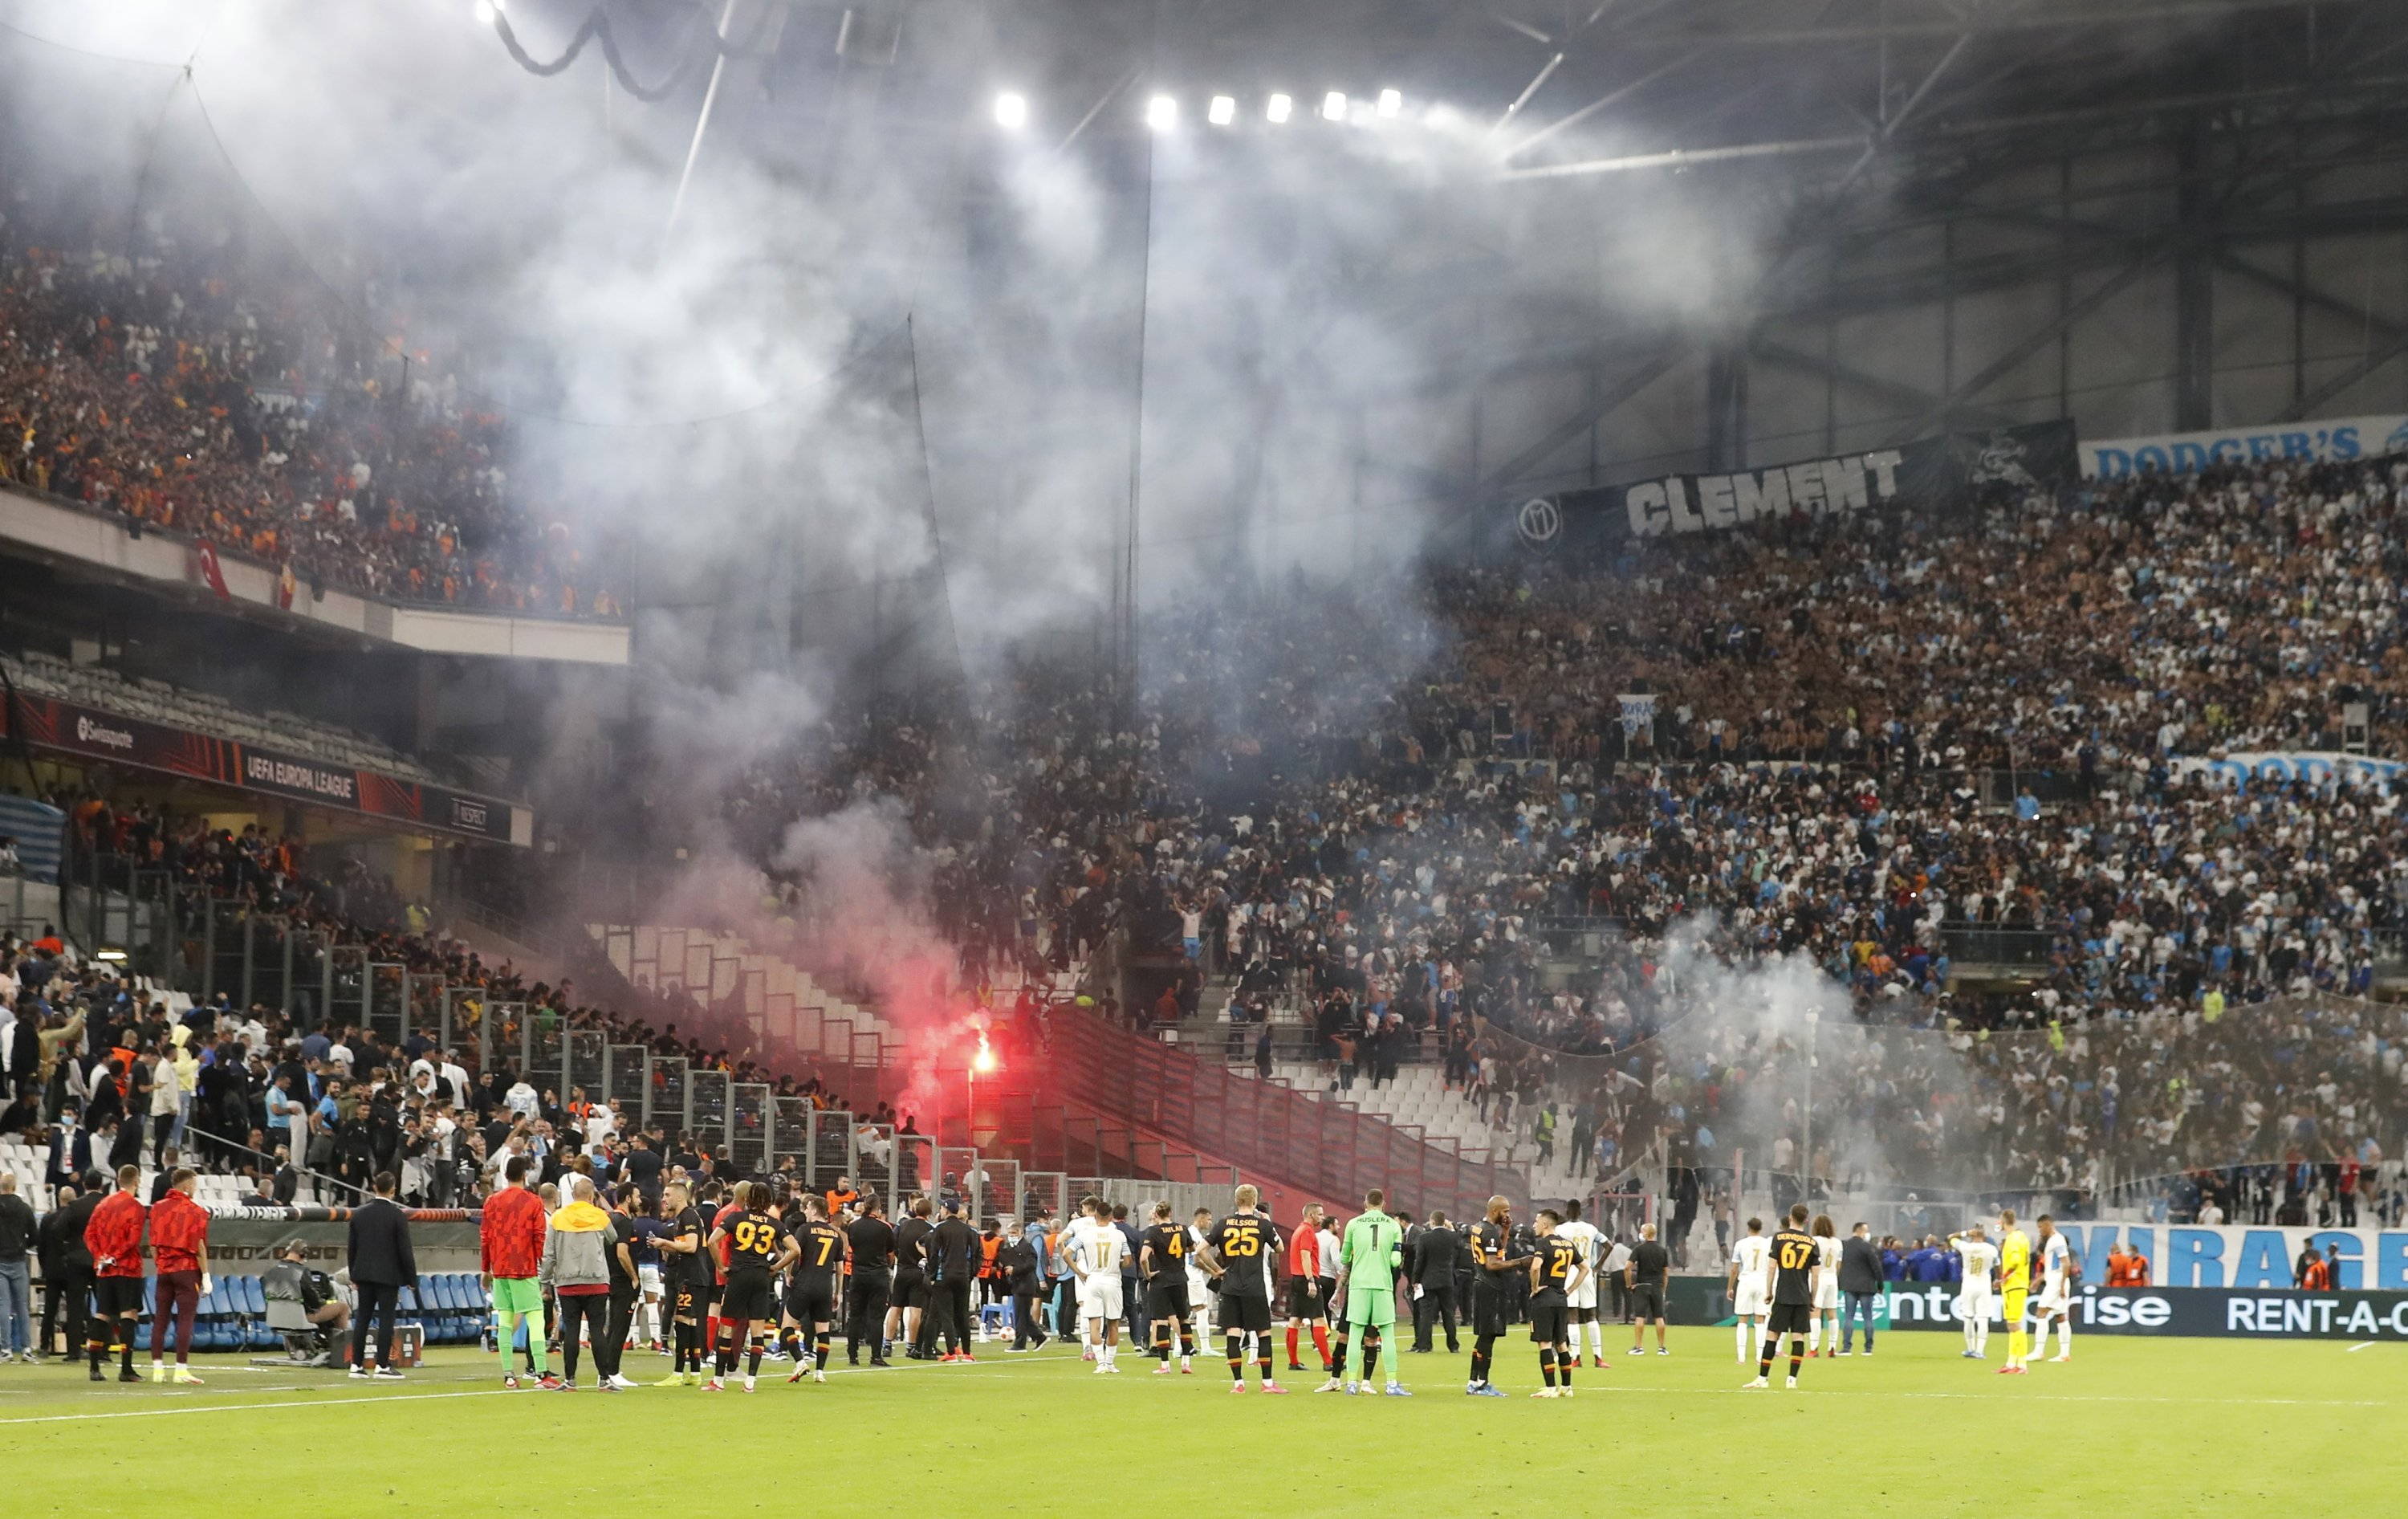 The match is stopped as French police clash with fans during the UEFA Europa League Group E match between Olympique de Marseille and Galatasaray at Orange Velodrome Stadium, Marseille, France on Sept. 30, 2021 (Reuters Photo)